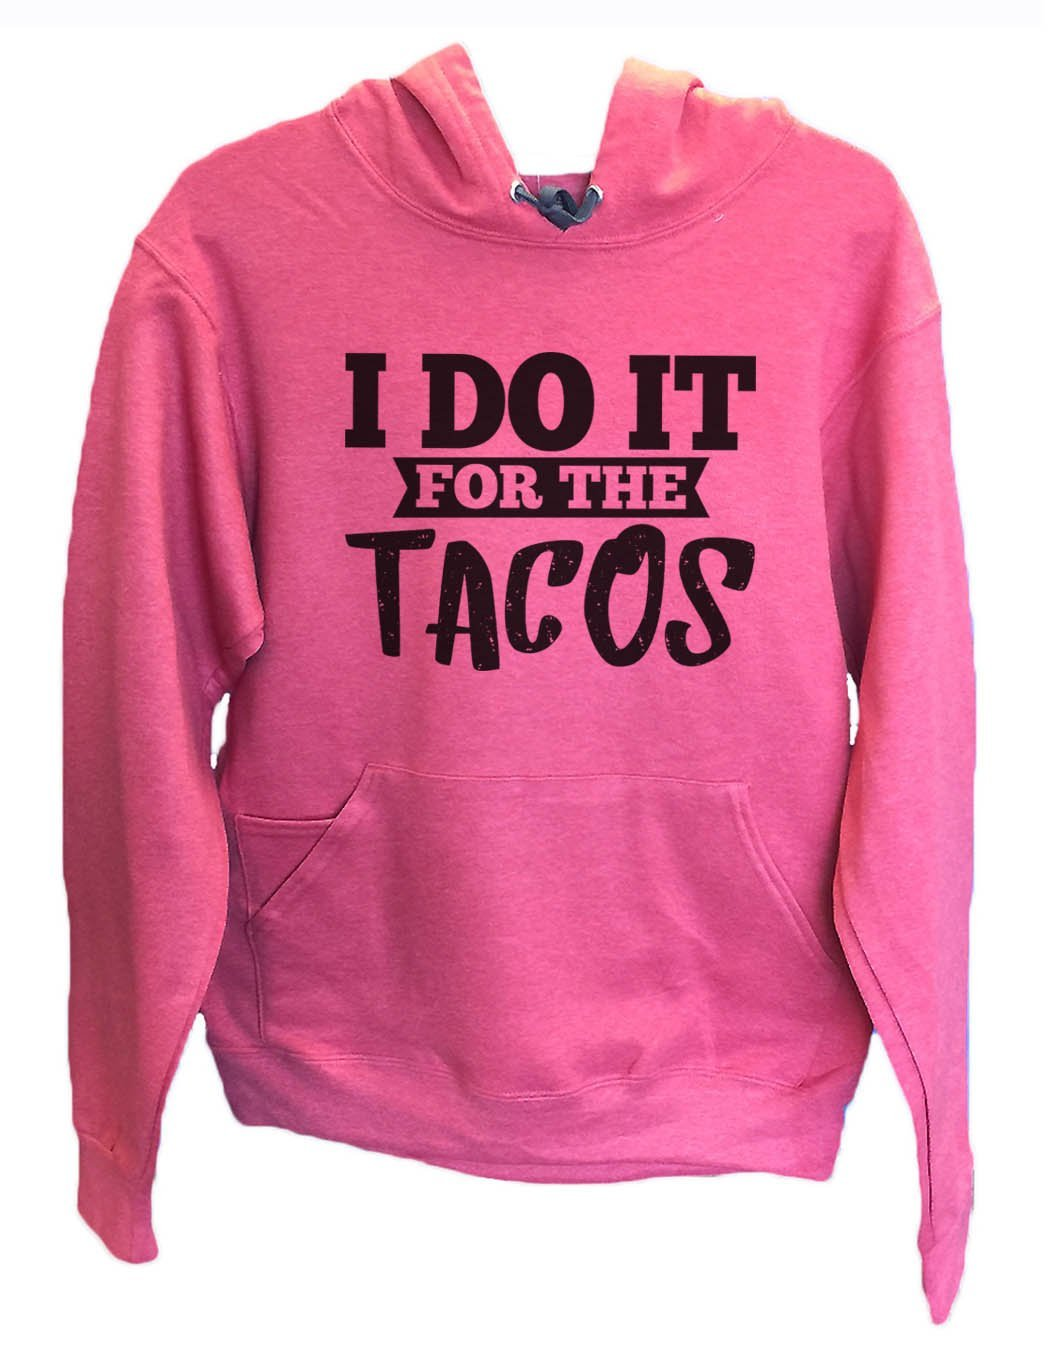 UNISEX HOODIE - I Do It For The Tacos - FUNNY MENS AND WOMENS HOODED SWEATSHIRTS - 2116 Funny Shirt Small / Cranberry Red